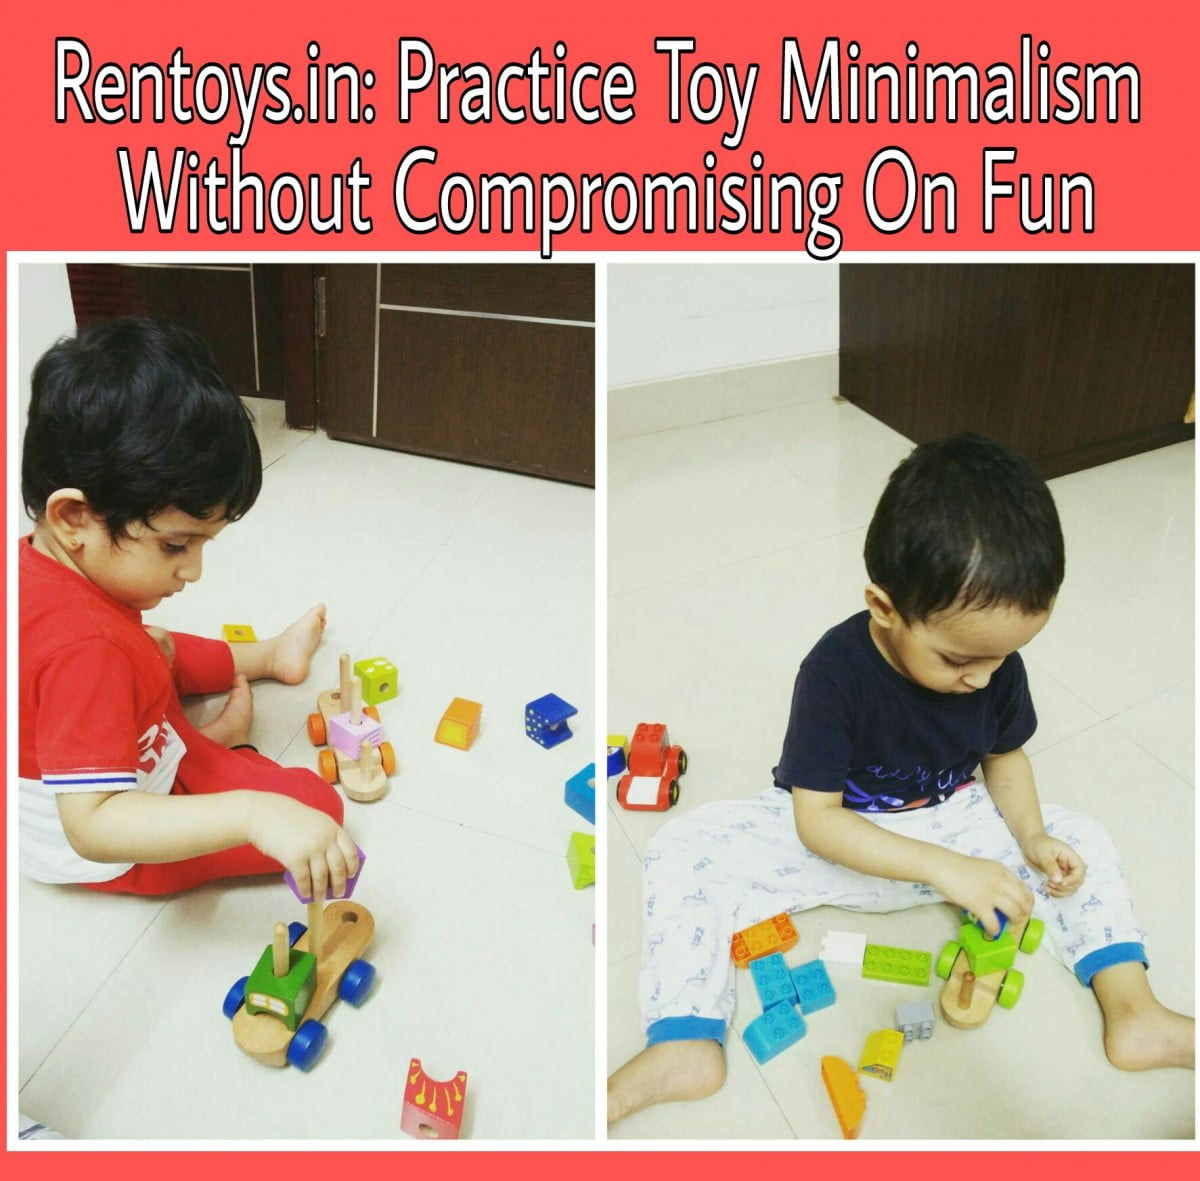 Rentoys : Practice Toy Minimalism Without Compromising On Fun